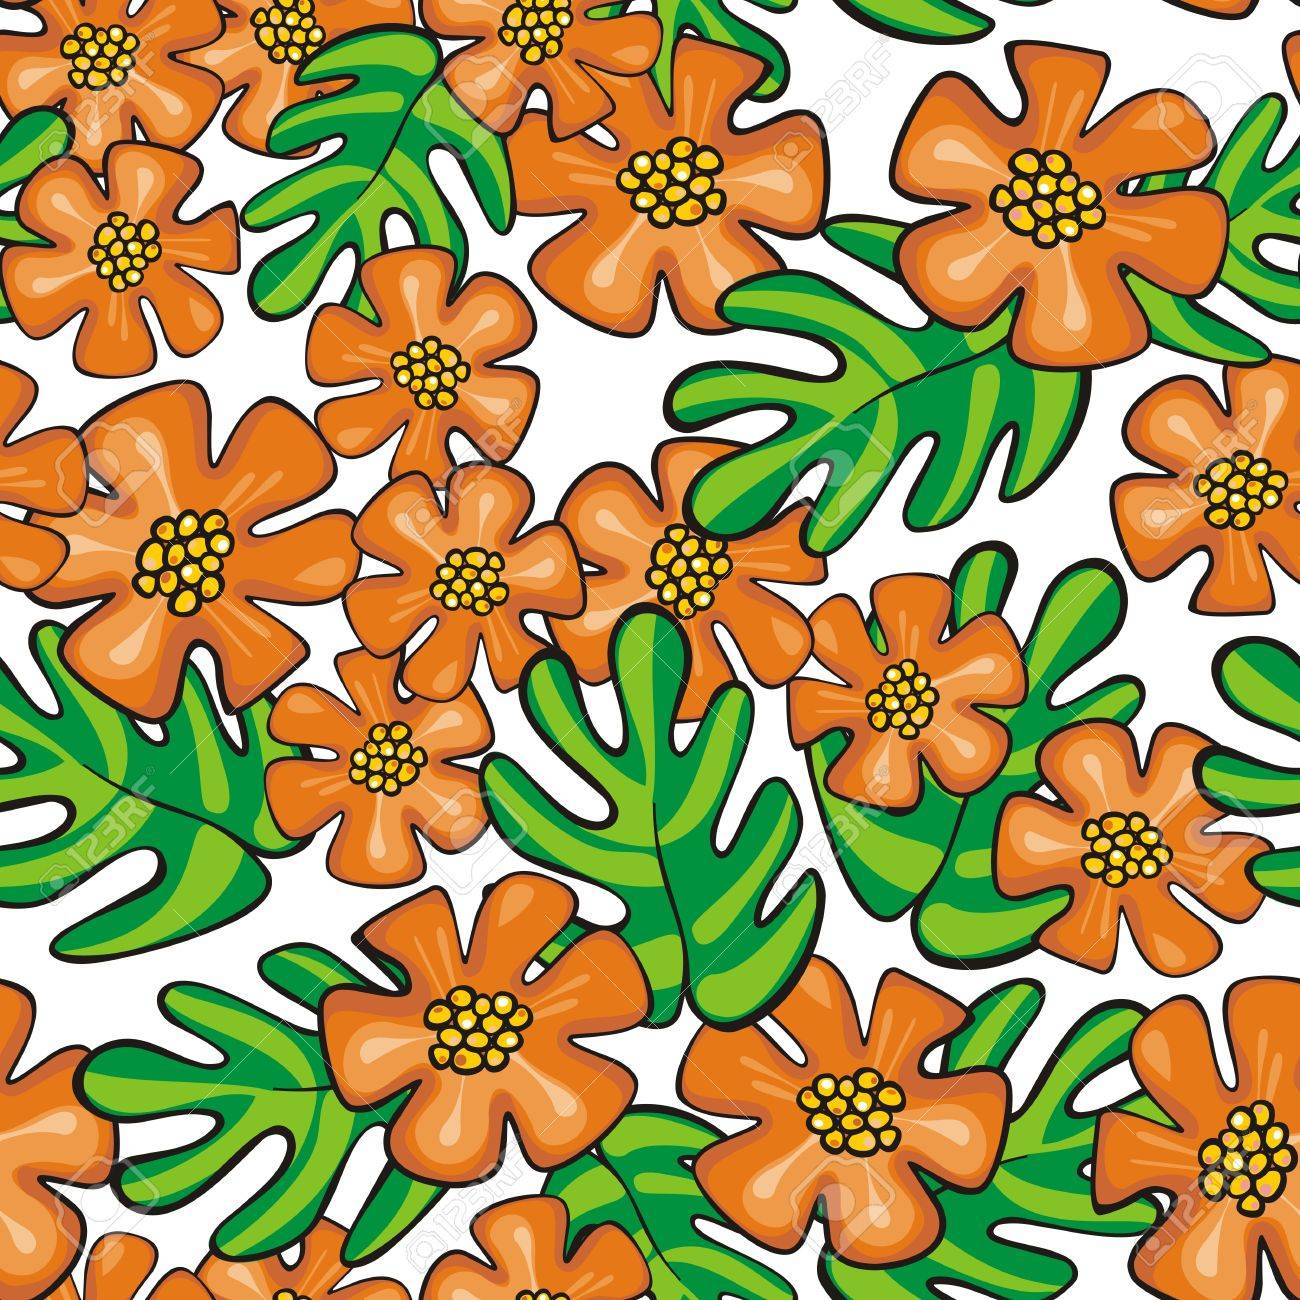 Colorful Wild Exotic Orange Flowers And Green Leaves On White Background Cartoon Style Floral Seamless Pattern